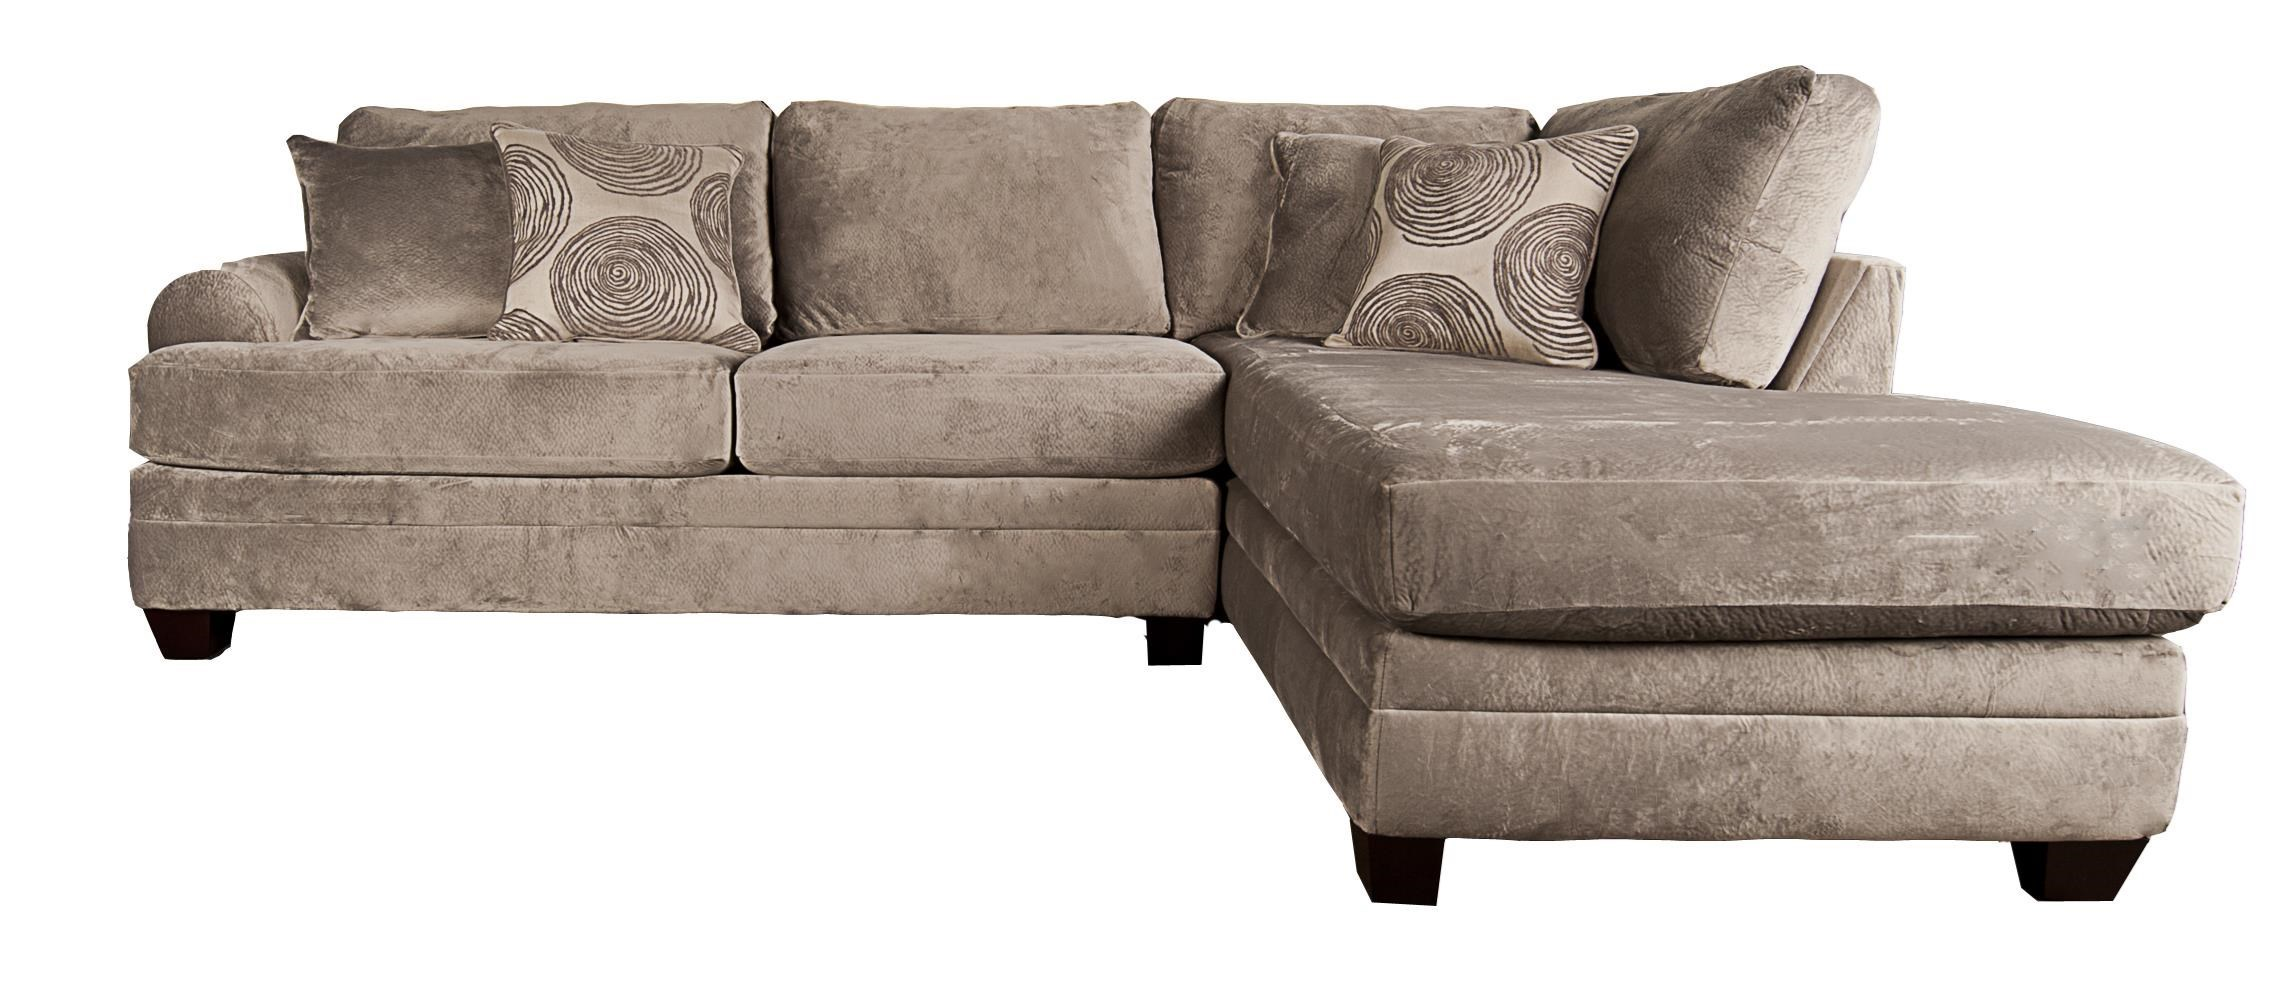 Sectional Bed Sofa Agustus Classic Sectional Sofa With Accent Pillows By Morris Home At Morris Home